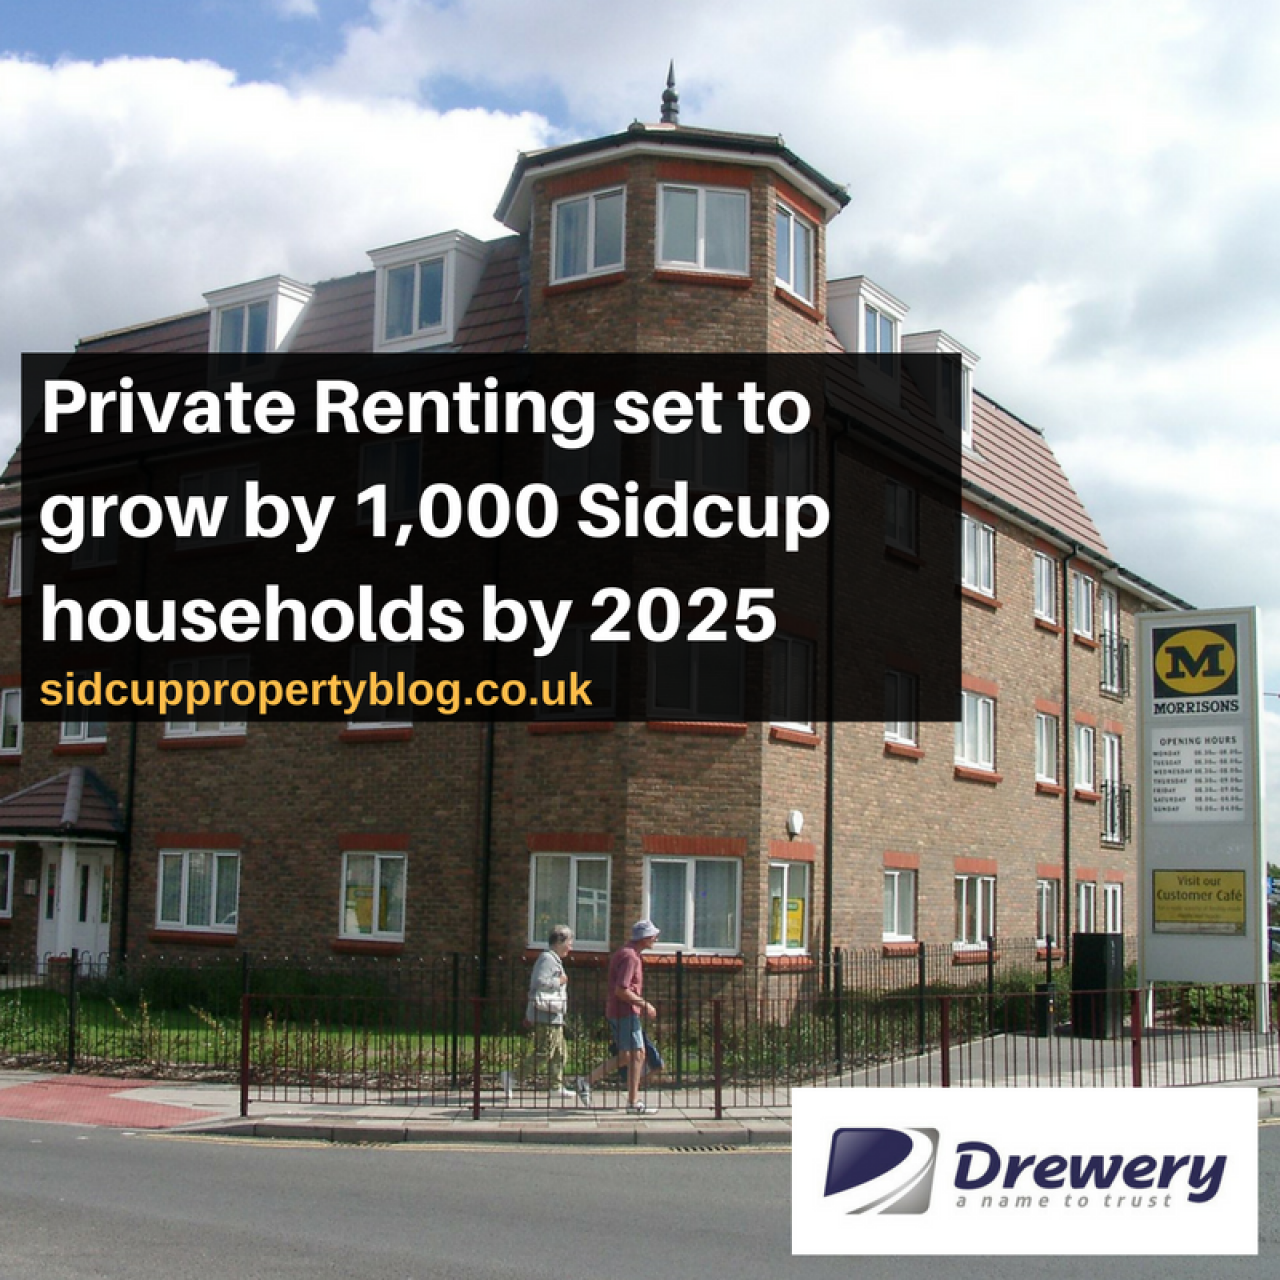 >Private Renting set to gro...